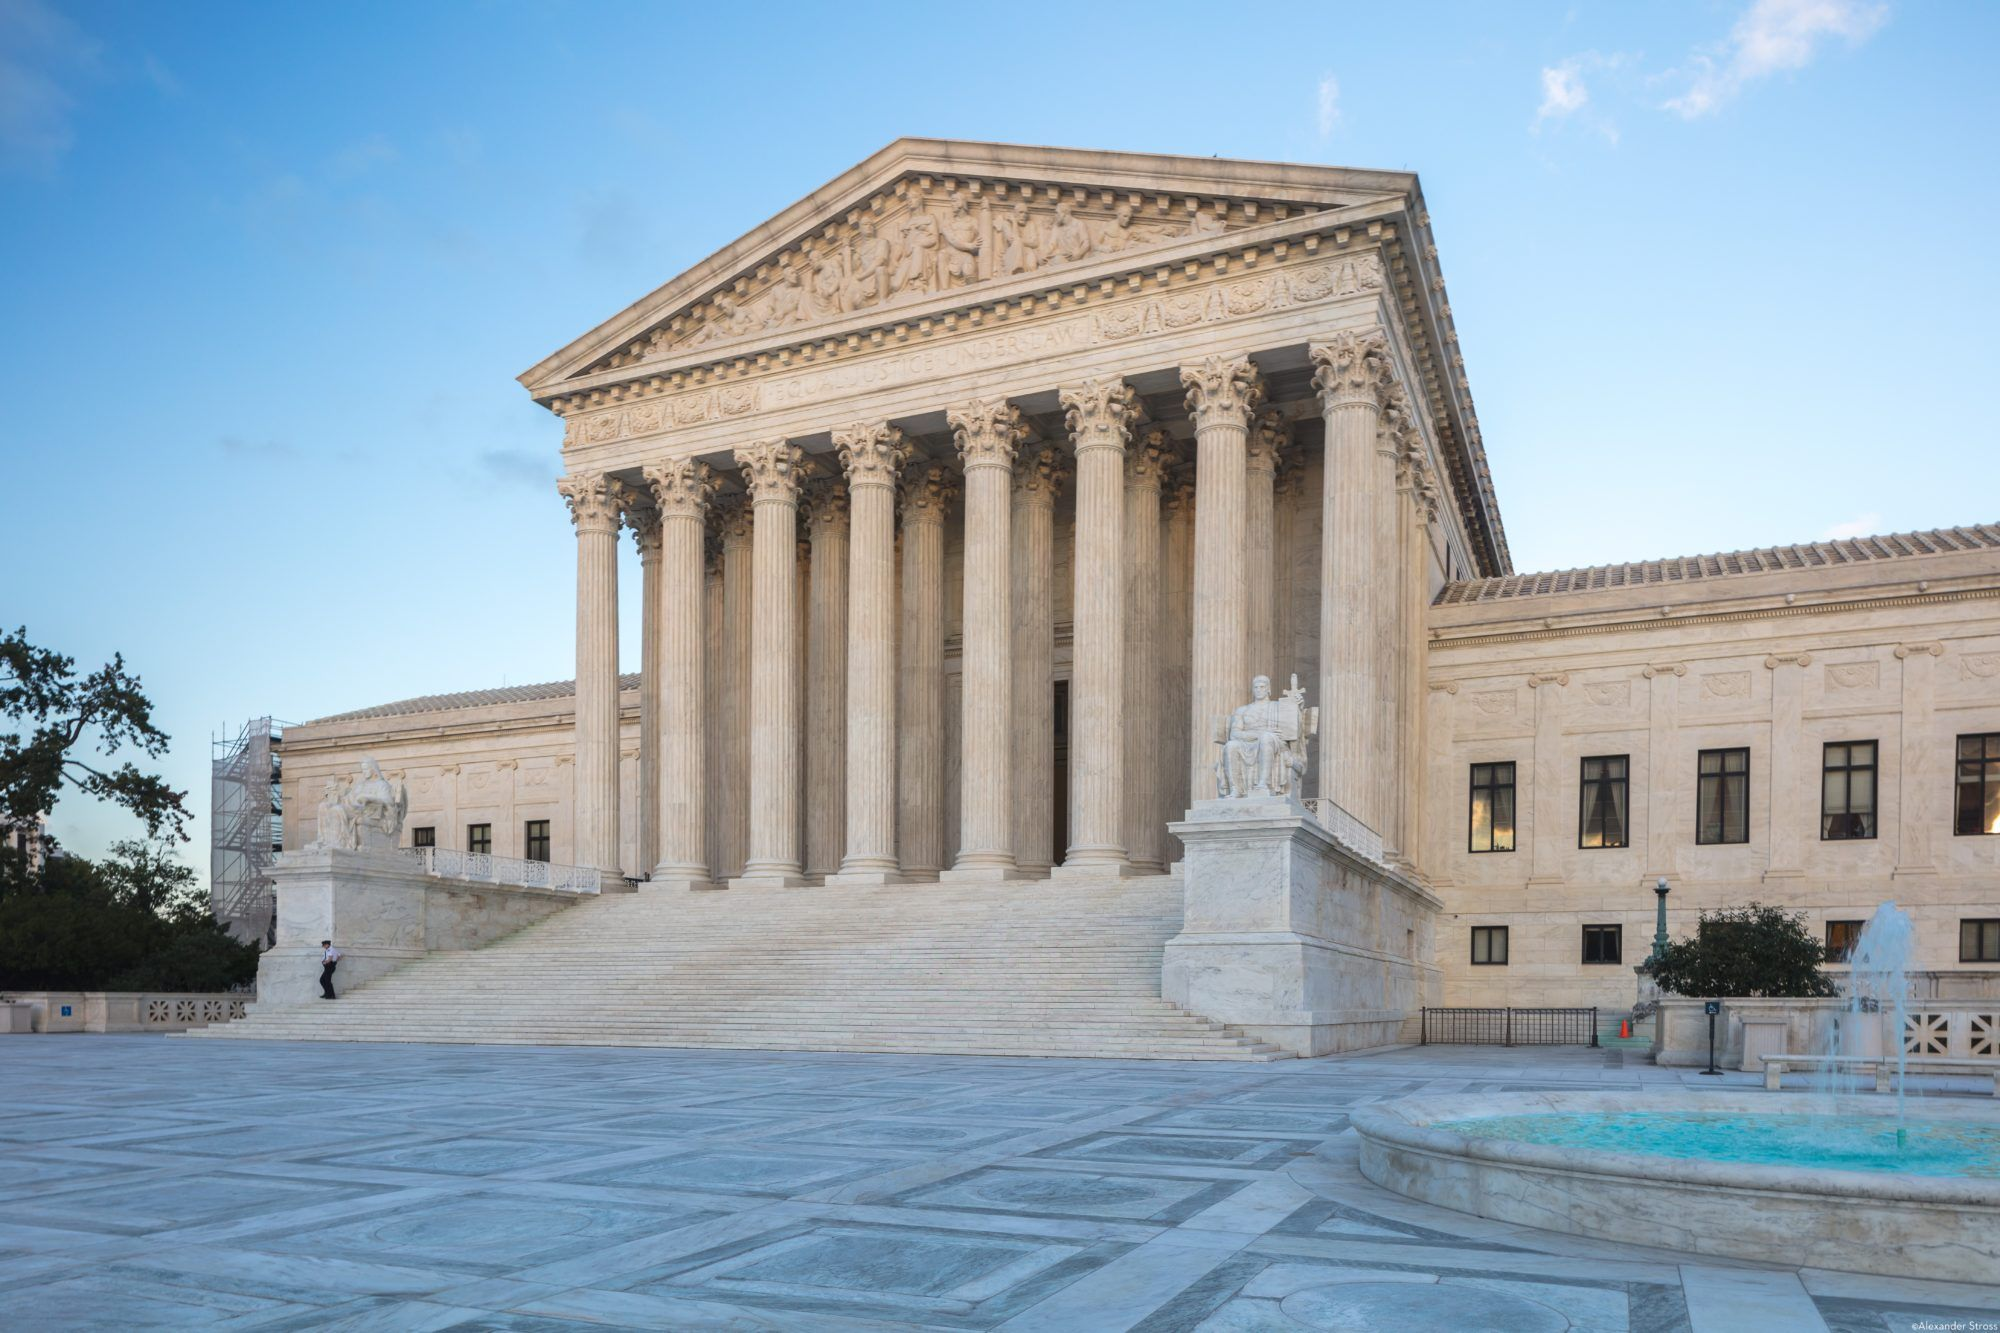 United States Supreme Court Buliding 5 Architecture Government Buliding Court States Supreme United Strosstock Ale Architecture House Styles Bayonne